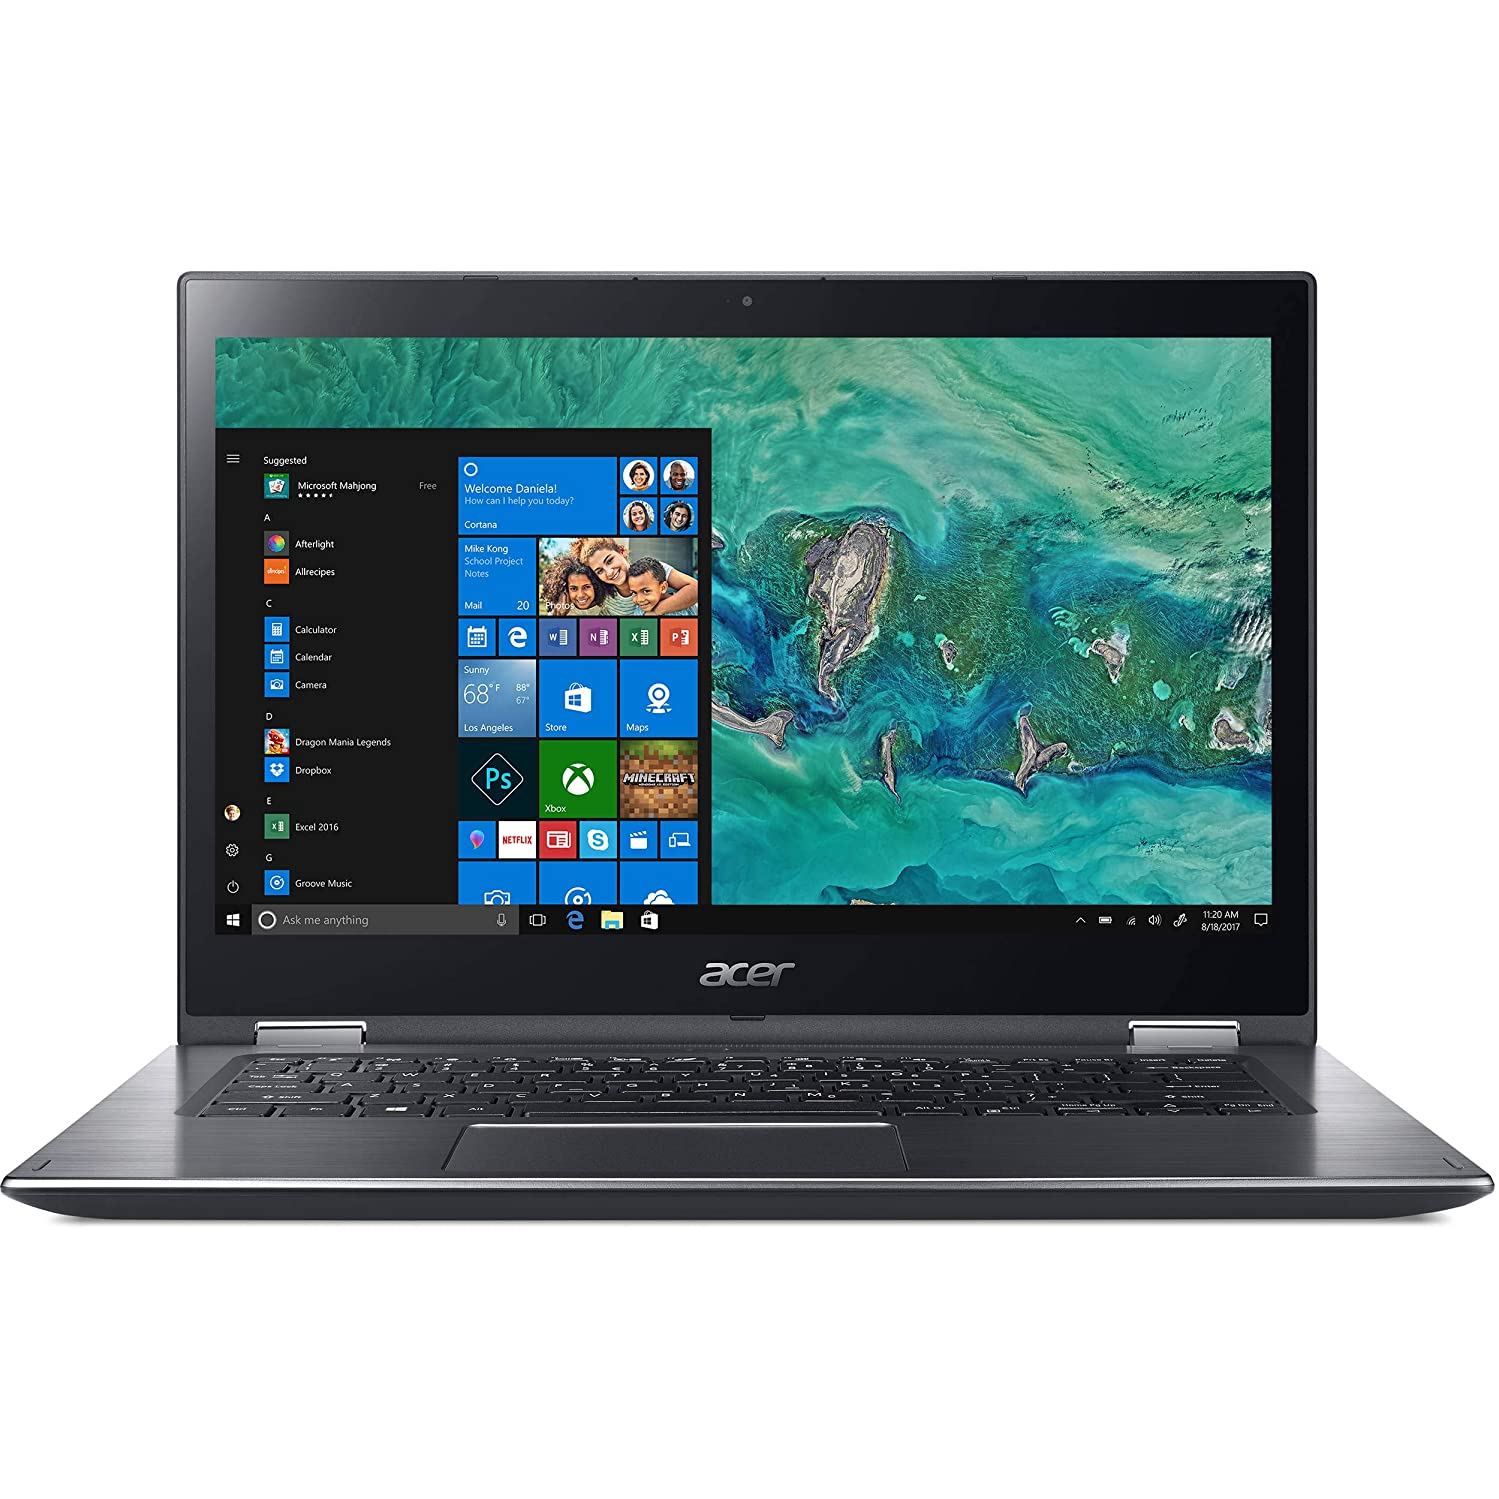 Acer 14in Spin 3 Laptop Intel Core i5-8250U 1.60GHz 8GB Ram 1TB HDD Windows 10 Home (Renewed)